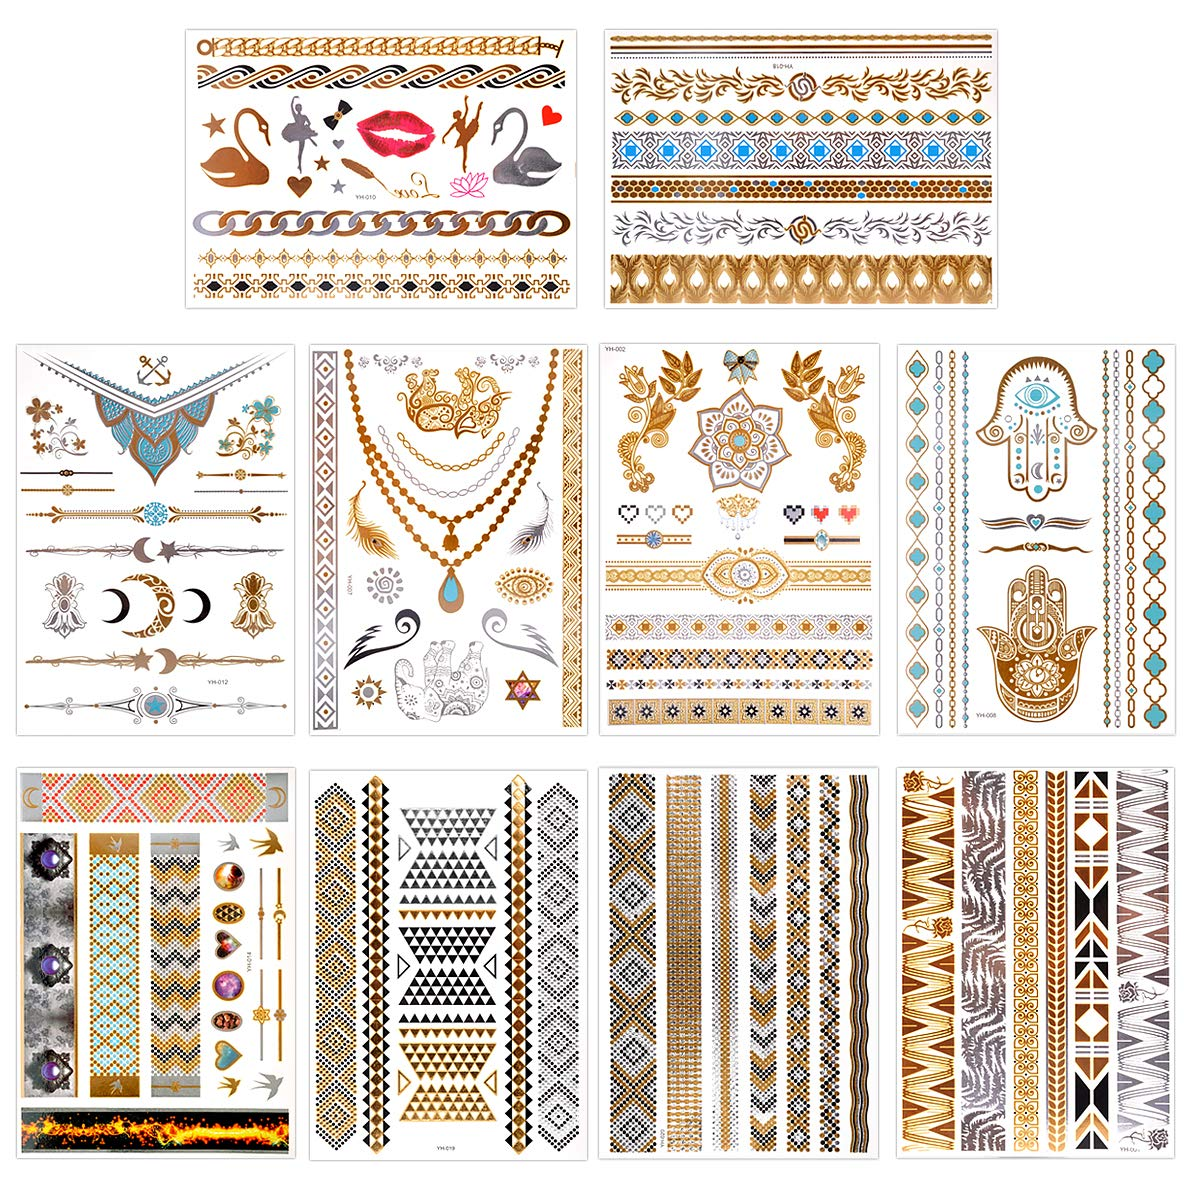 Temporary Tattoos Waterproof, Lady Up 10 Sheets Mix Styles Metallic Mandala Henna Colorful Gold Silver Tattoos Shimmer Glitter for Body Art Festival Halloween Party